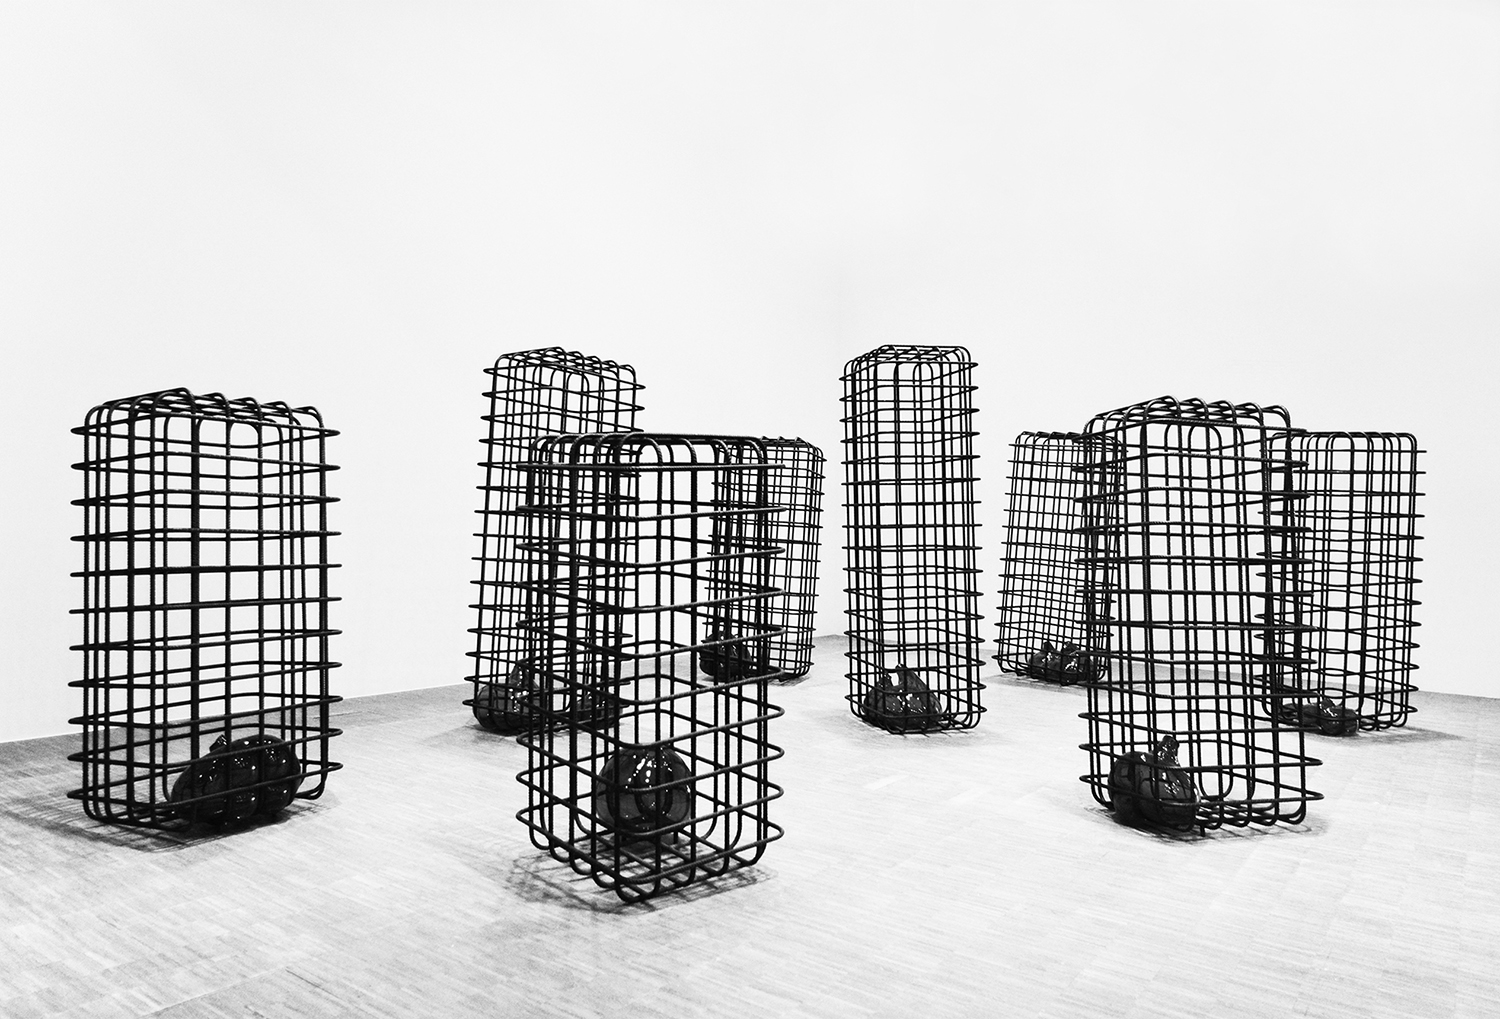 mona hatoum 'cellules' 2012-2013. photography by nicolas mazzei | S/TUDIO